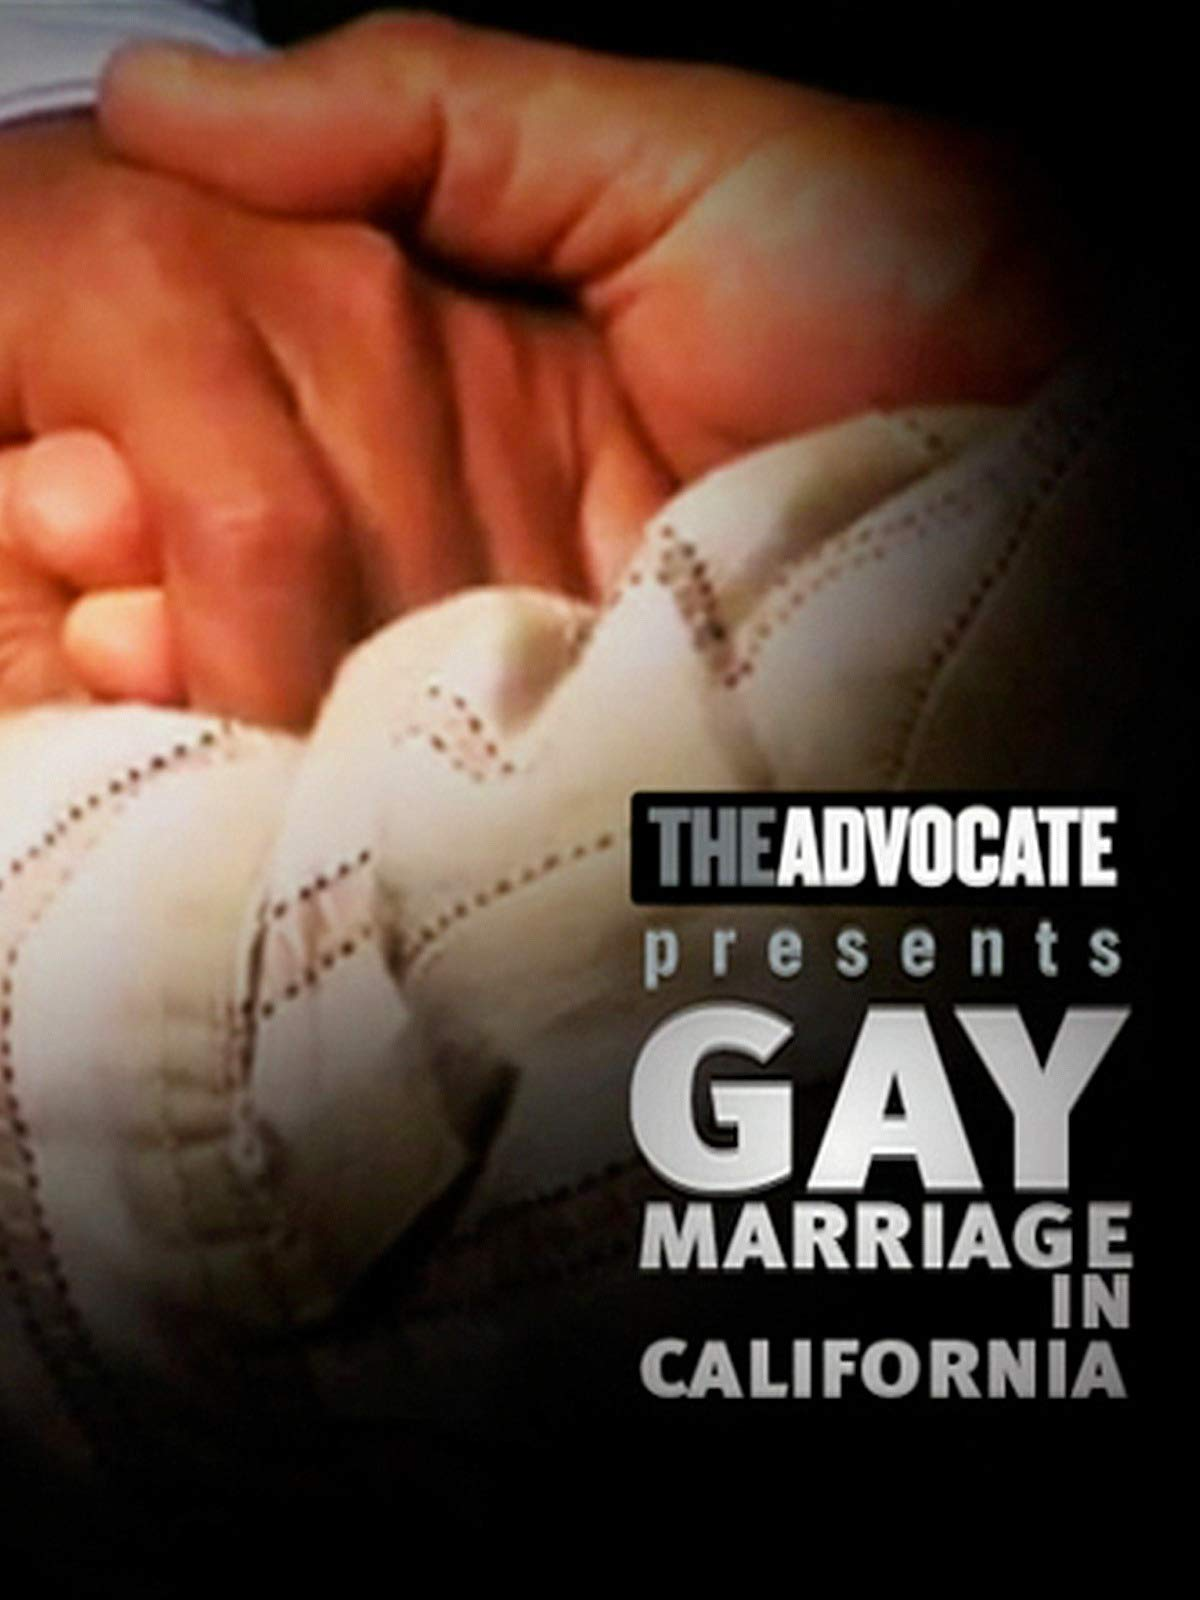 The Advocate Presents: Gay Marriage in California